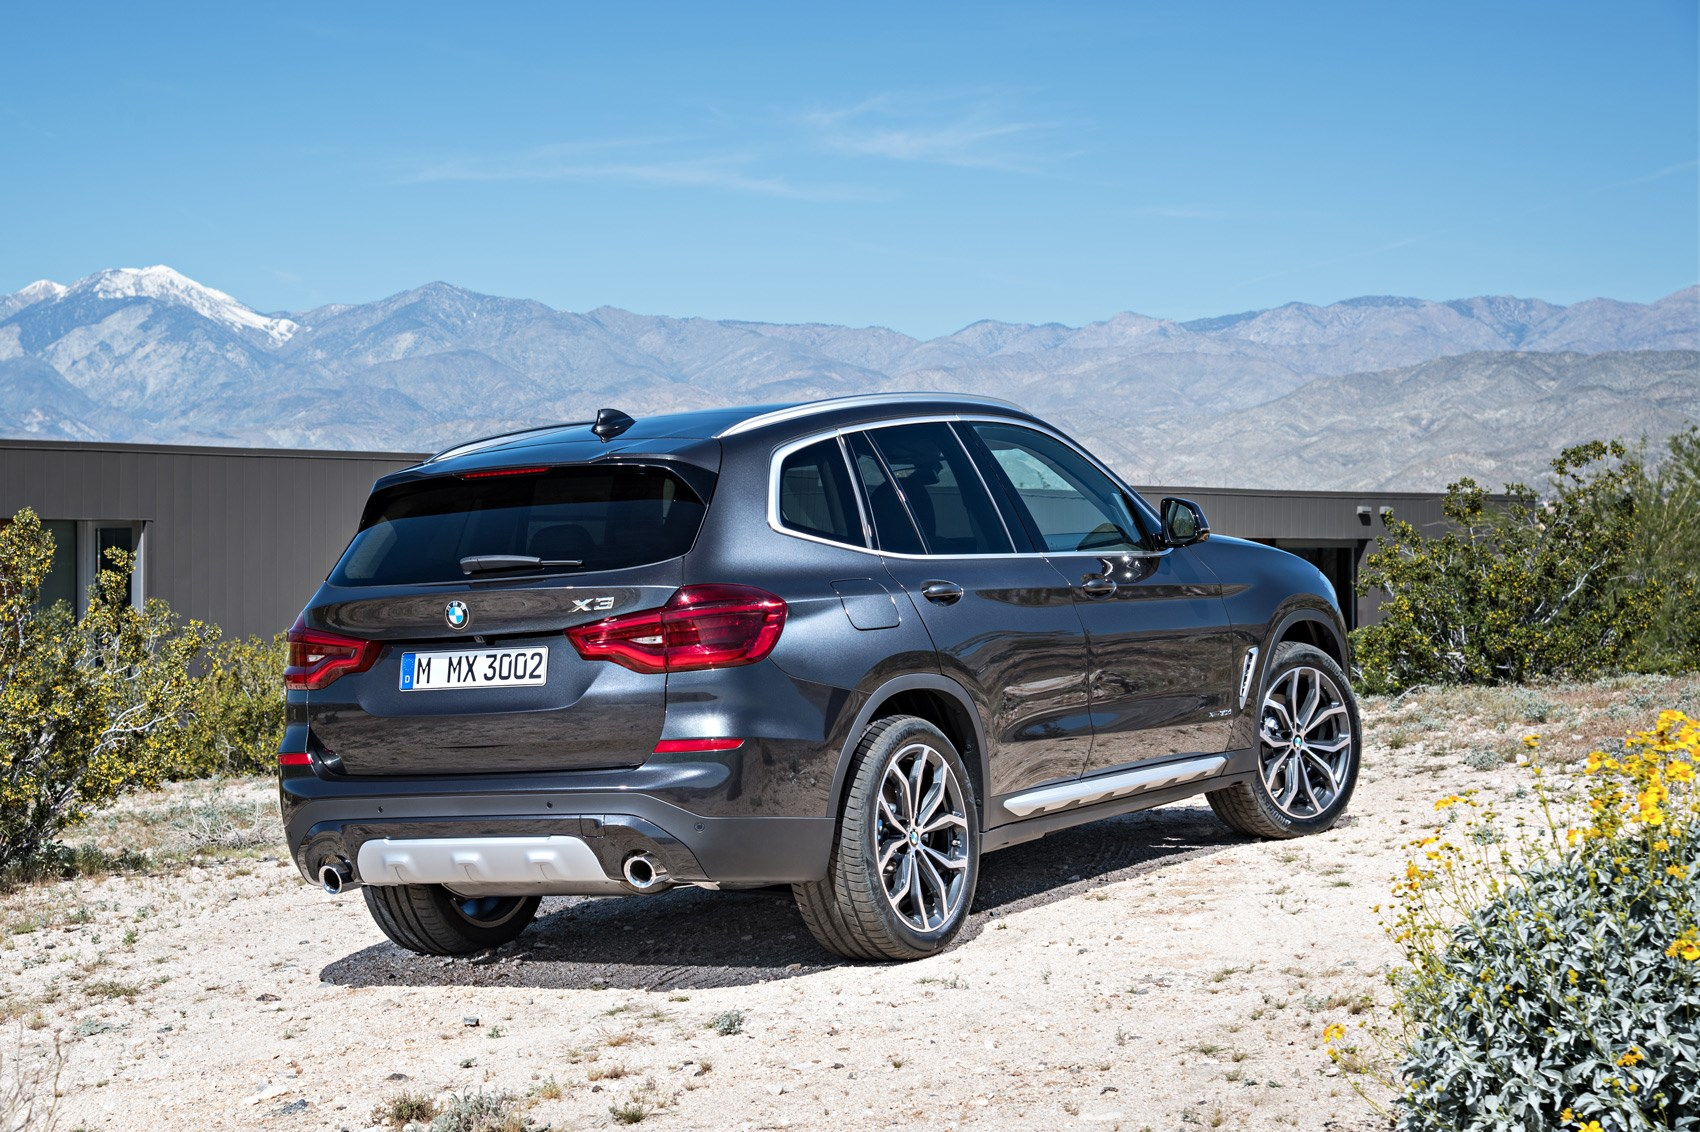 Subaru Suv Models >> New BMW X3 SUV revealed: Munich's photocopier is working fine by CAR Magazine